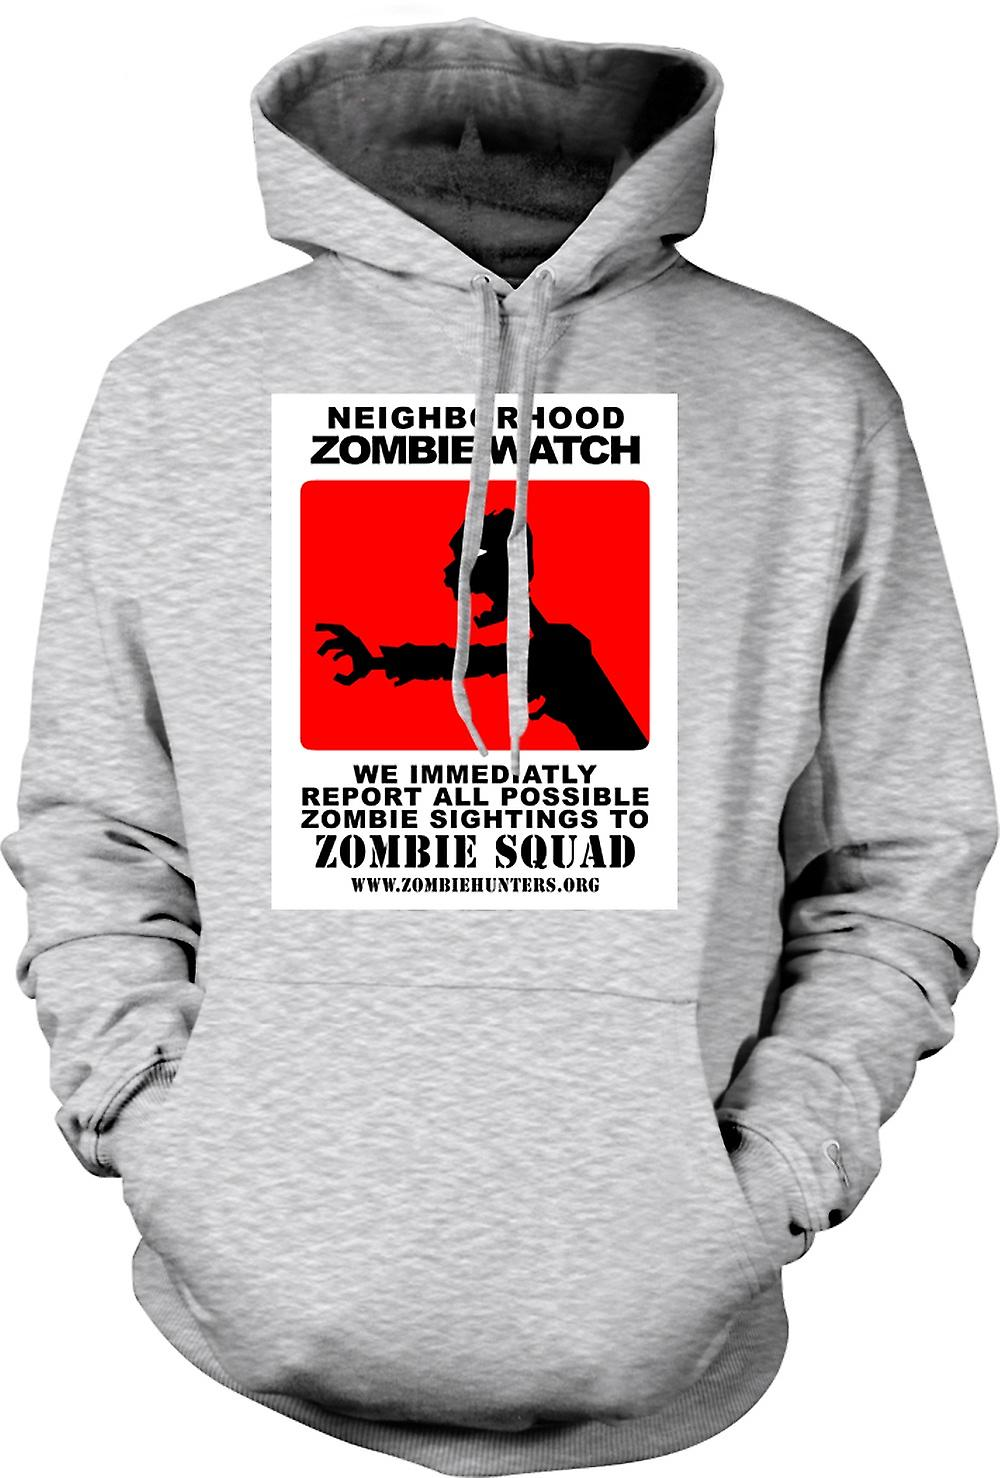 Mens-Hoodie - Zombie Neighborhood Watch - lustig